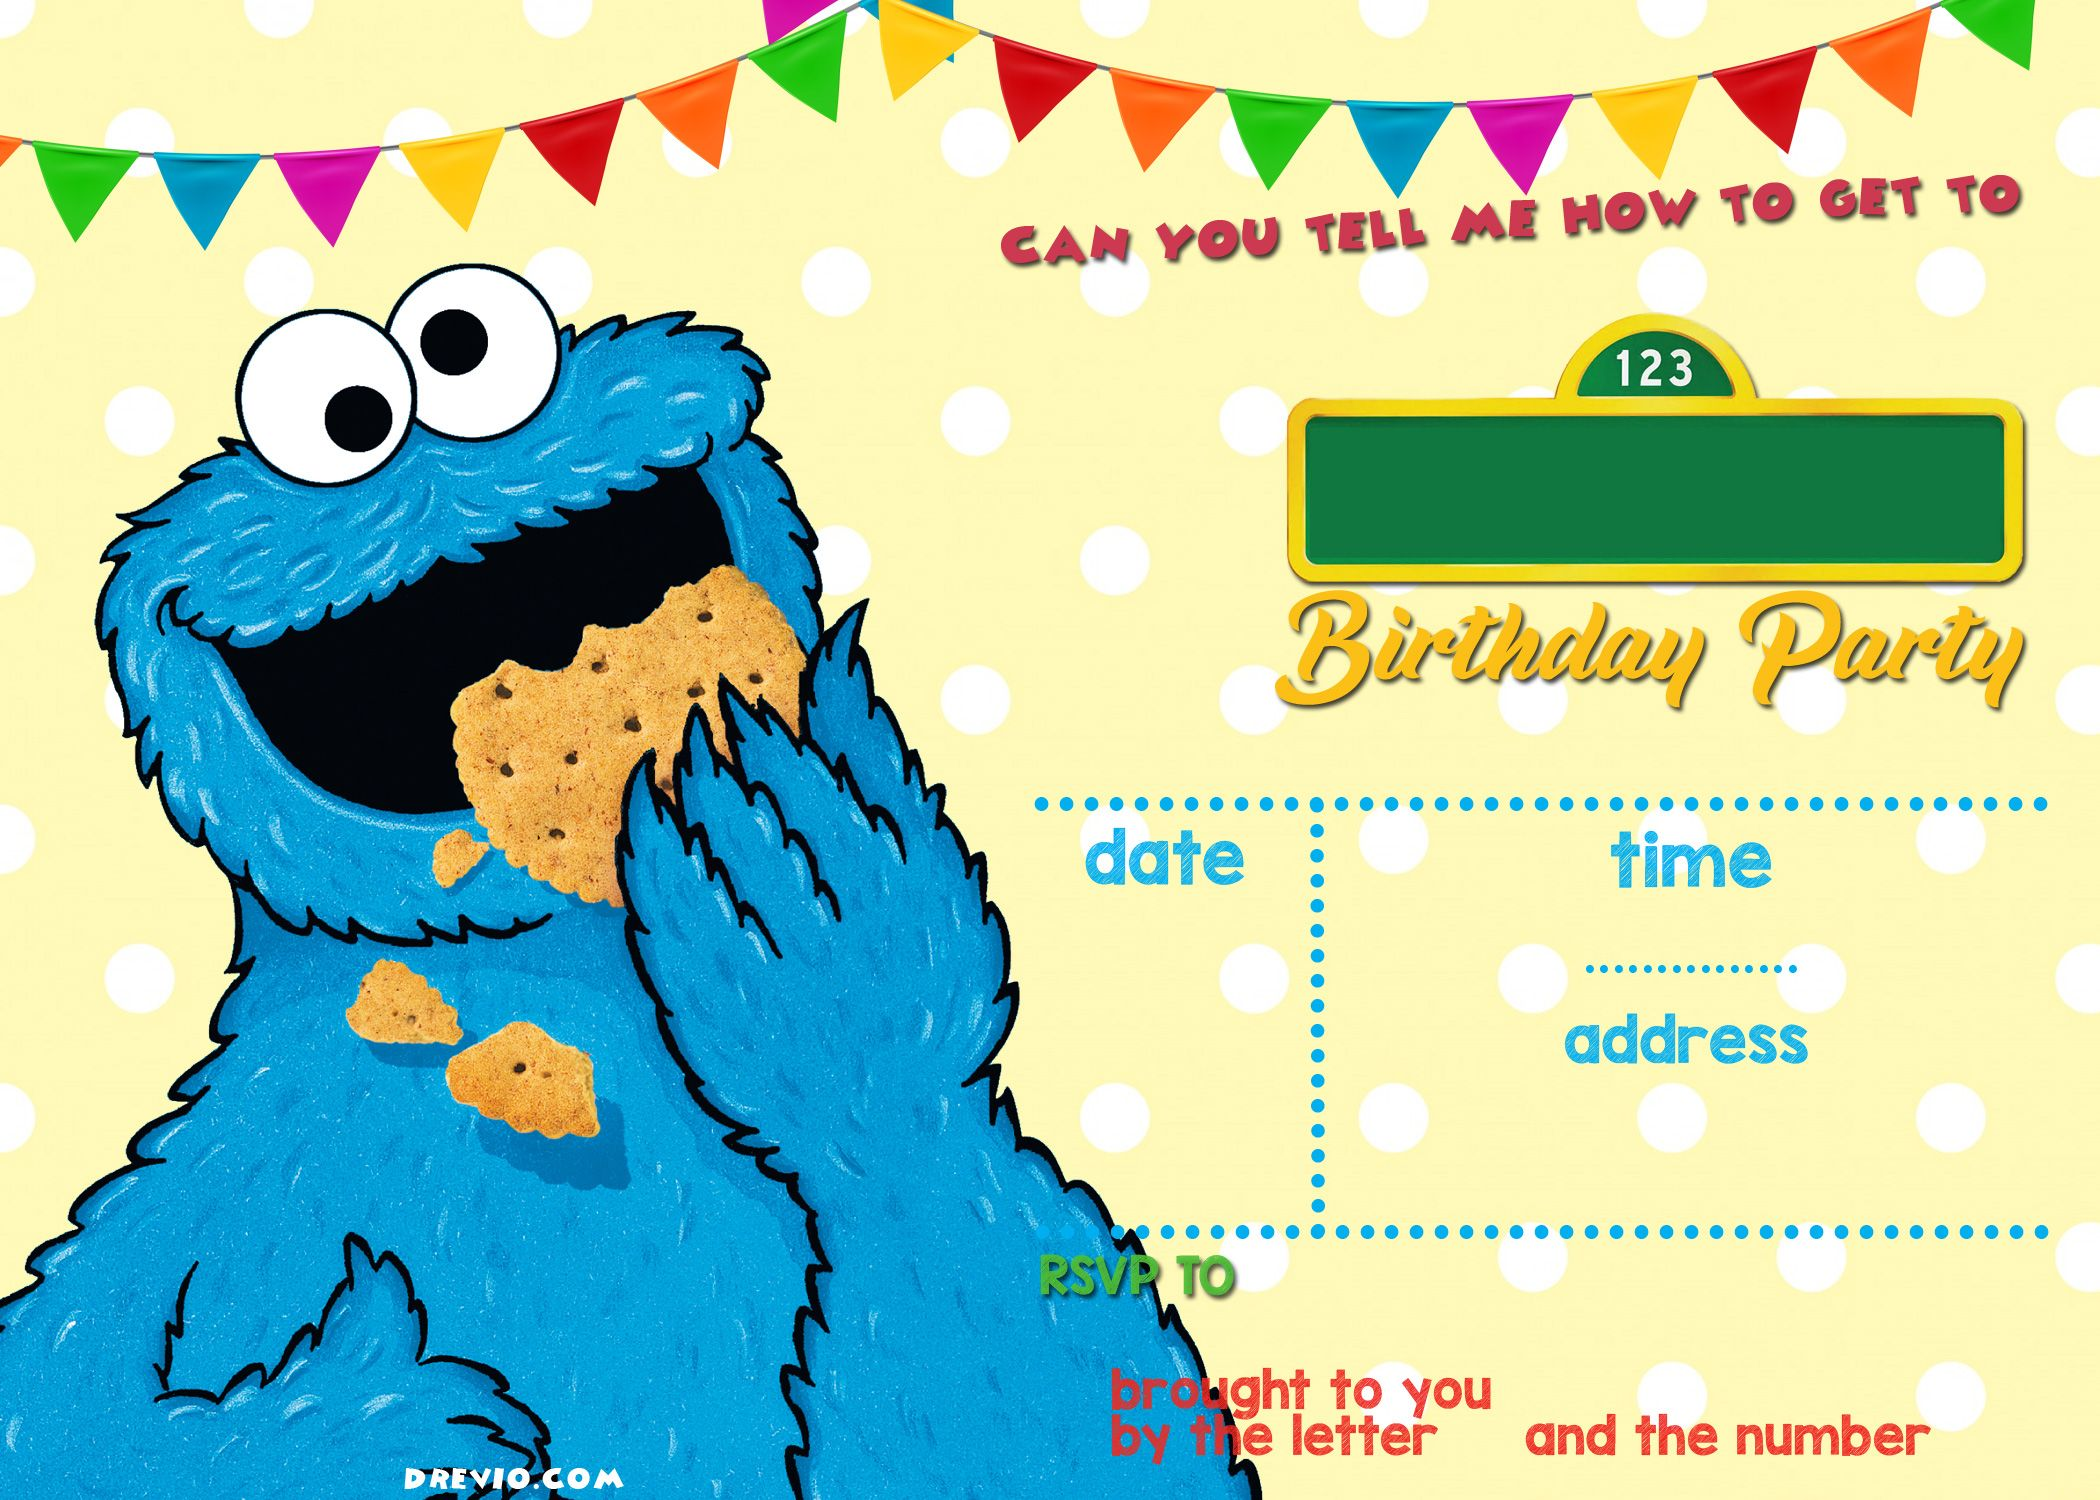 Sesame Street Birthday Invitations Online Sesame Street Birthday Party Invitation Monster Birthday Invitations Sesame Street Birthday Invitations